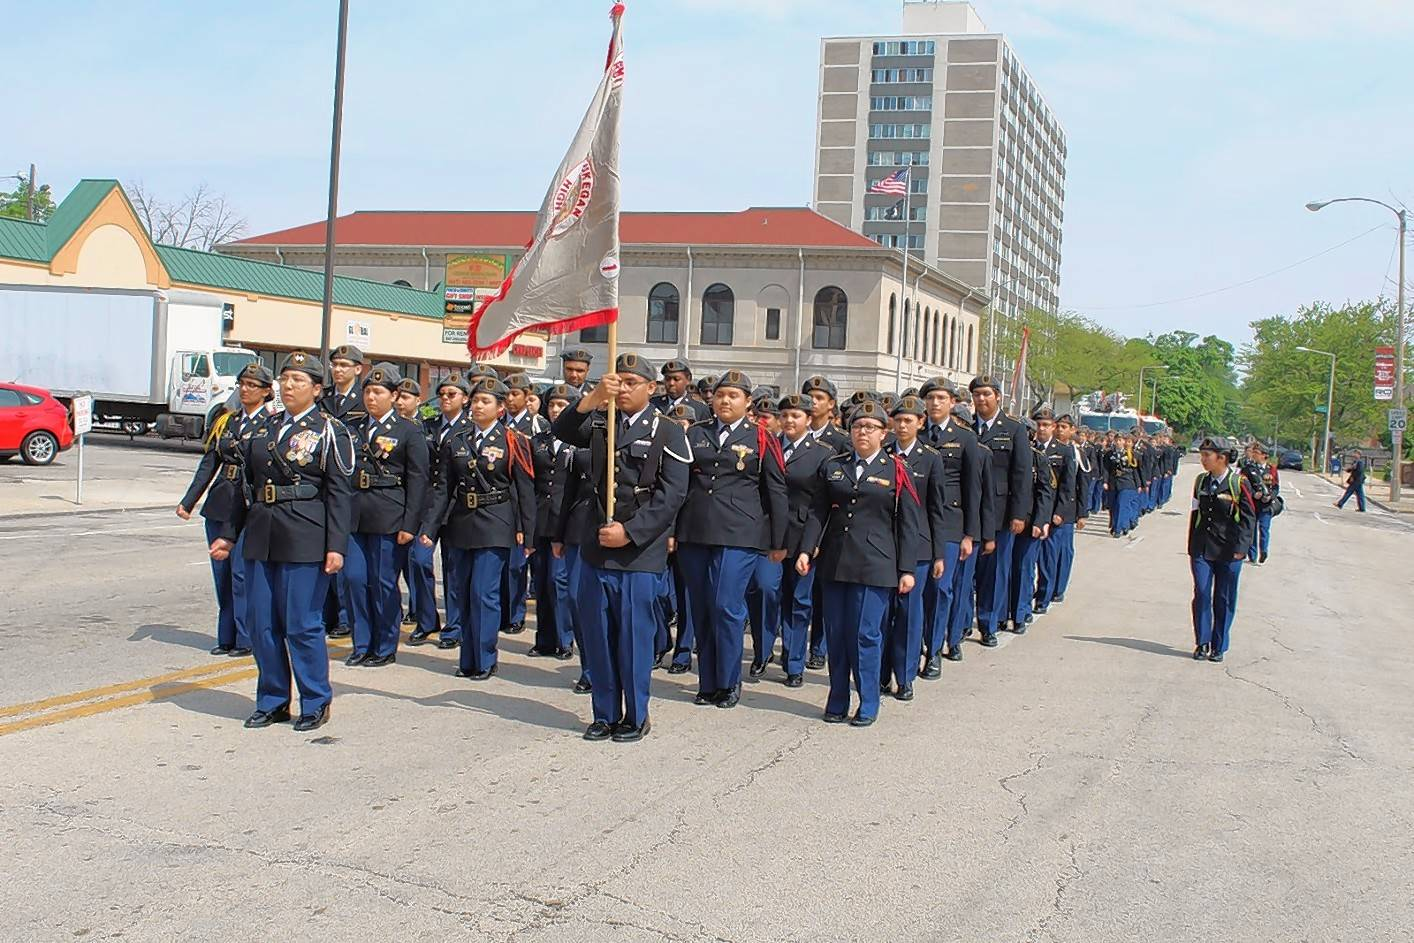 U-46 looks at offering ROTC: Why some suburban high schools say it's needed